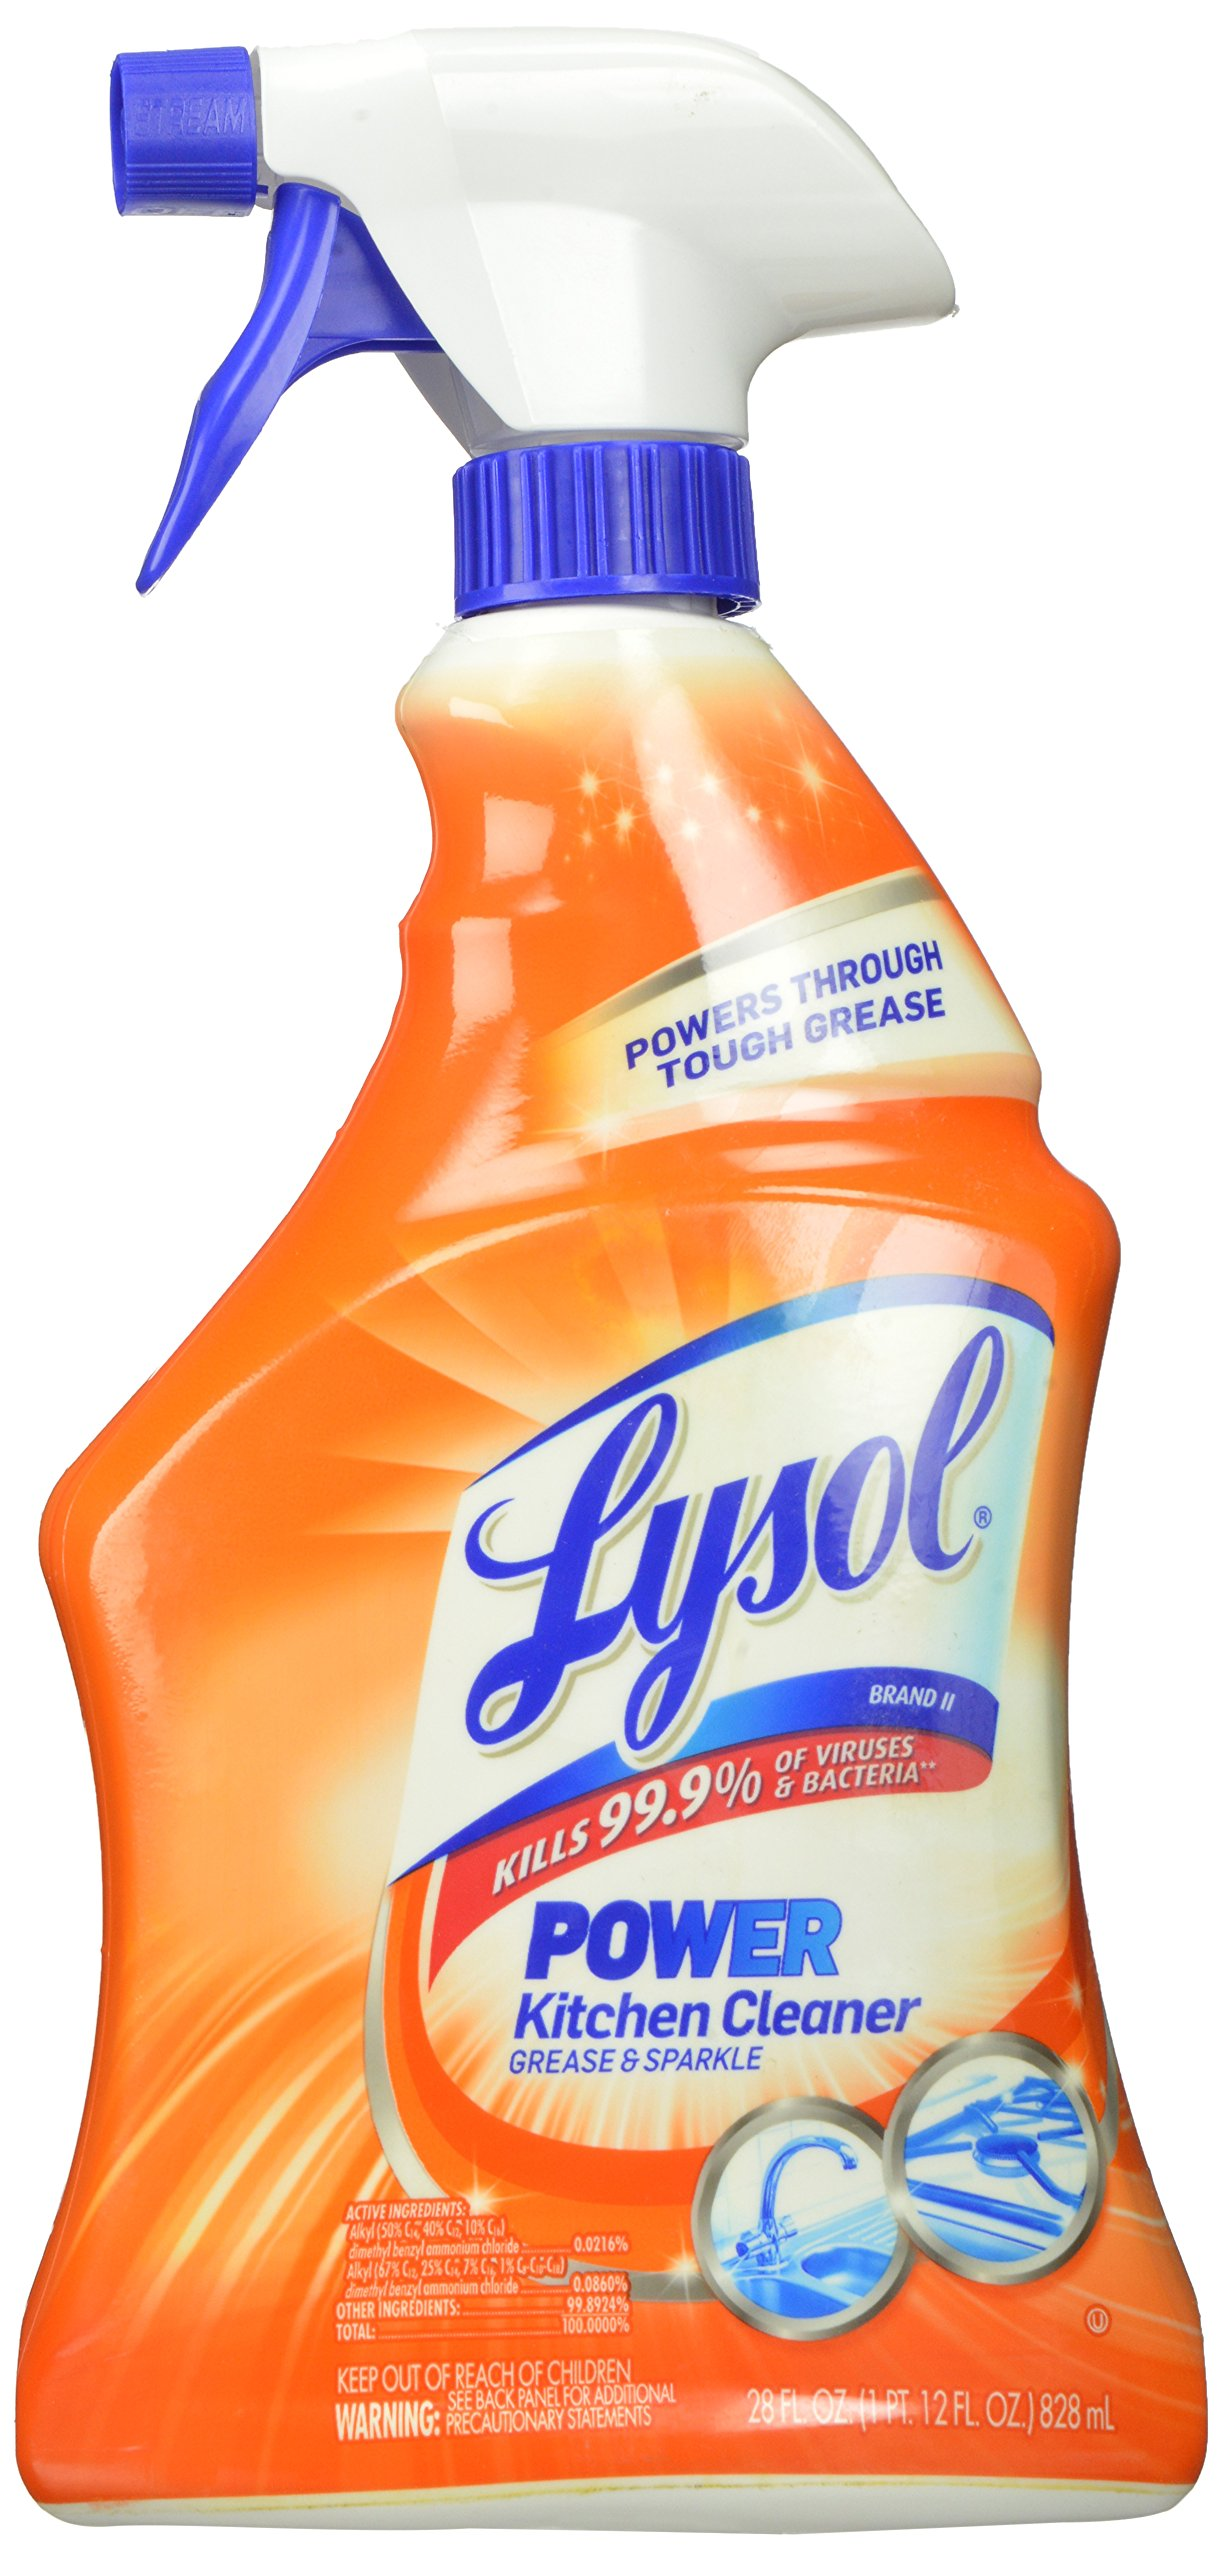 Lysol Power Kitchen Cleaner Spray, 28 Fluid Ounce (Pack of 9) string